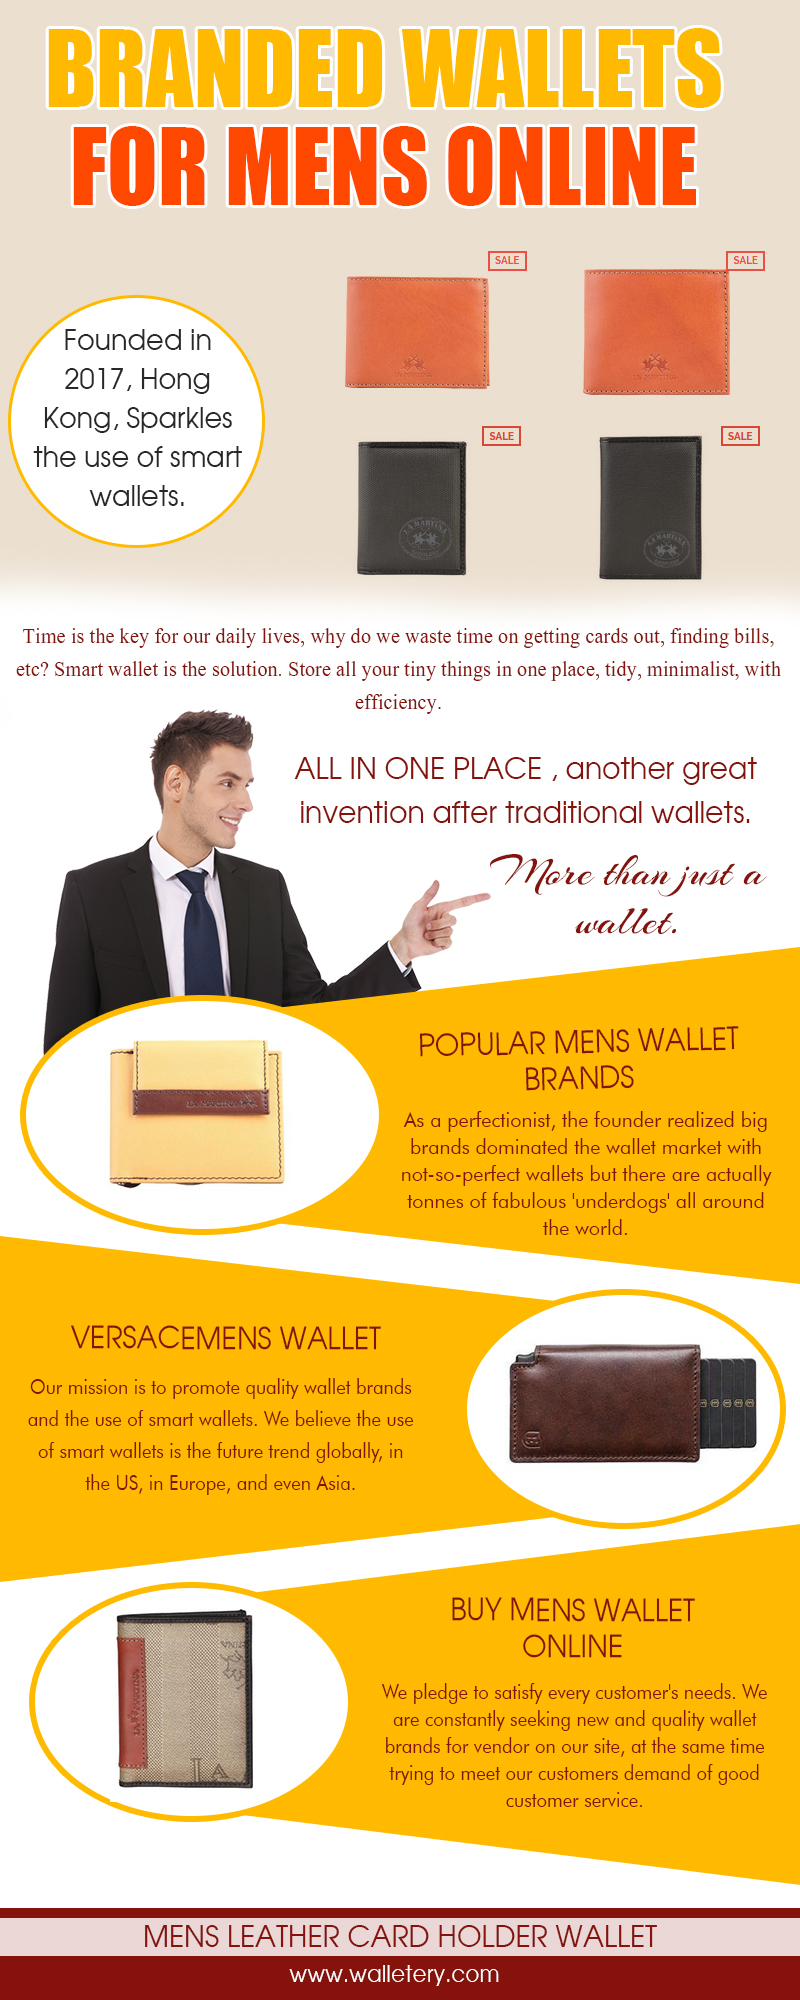 Branded Wallets For Mens Online